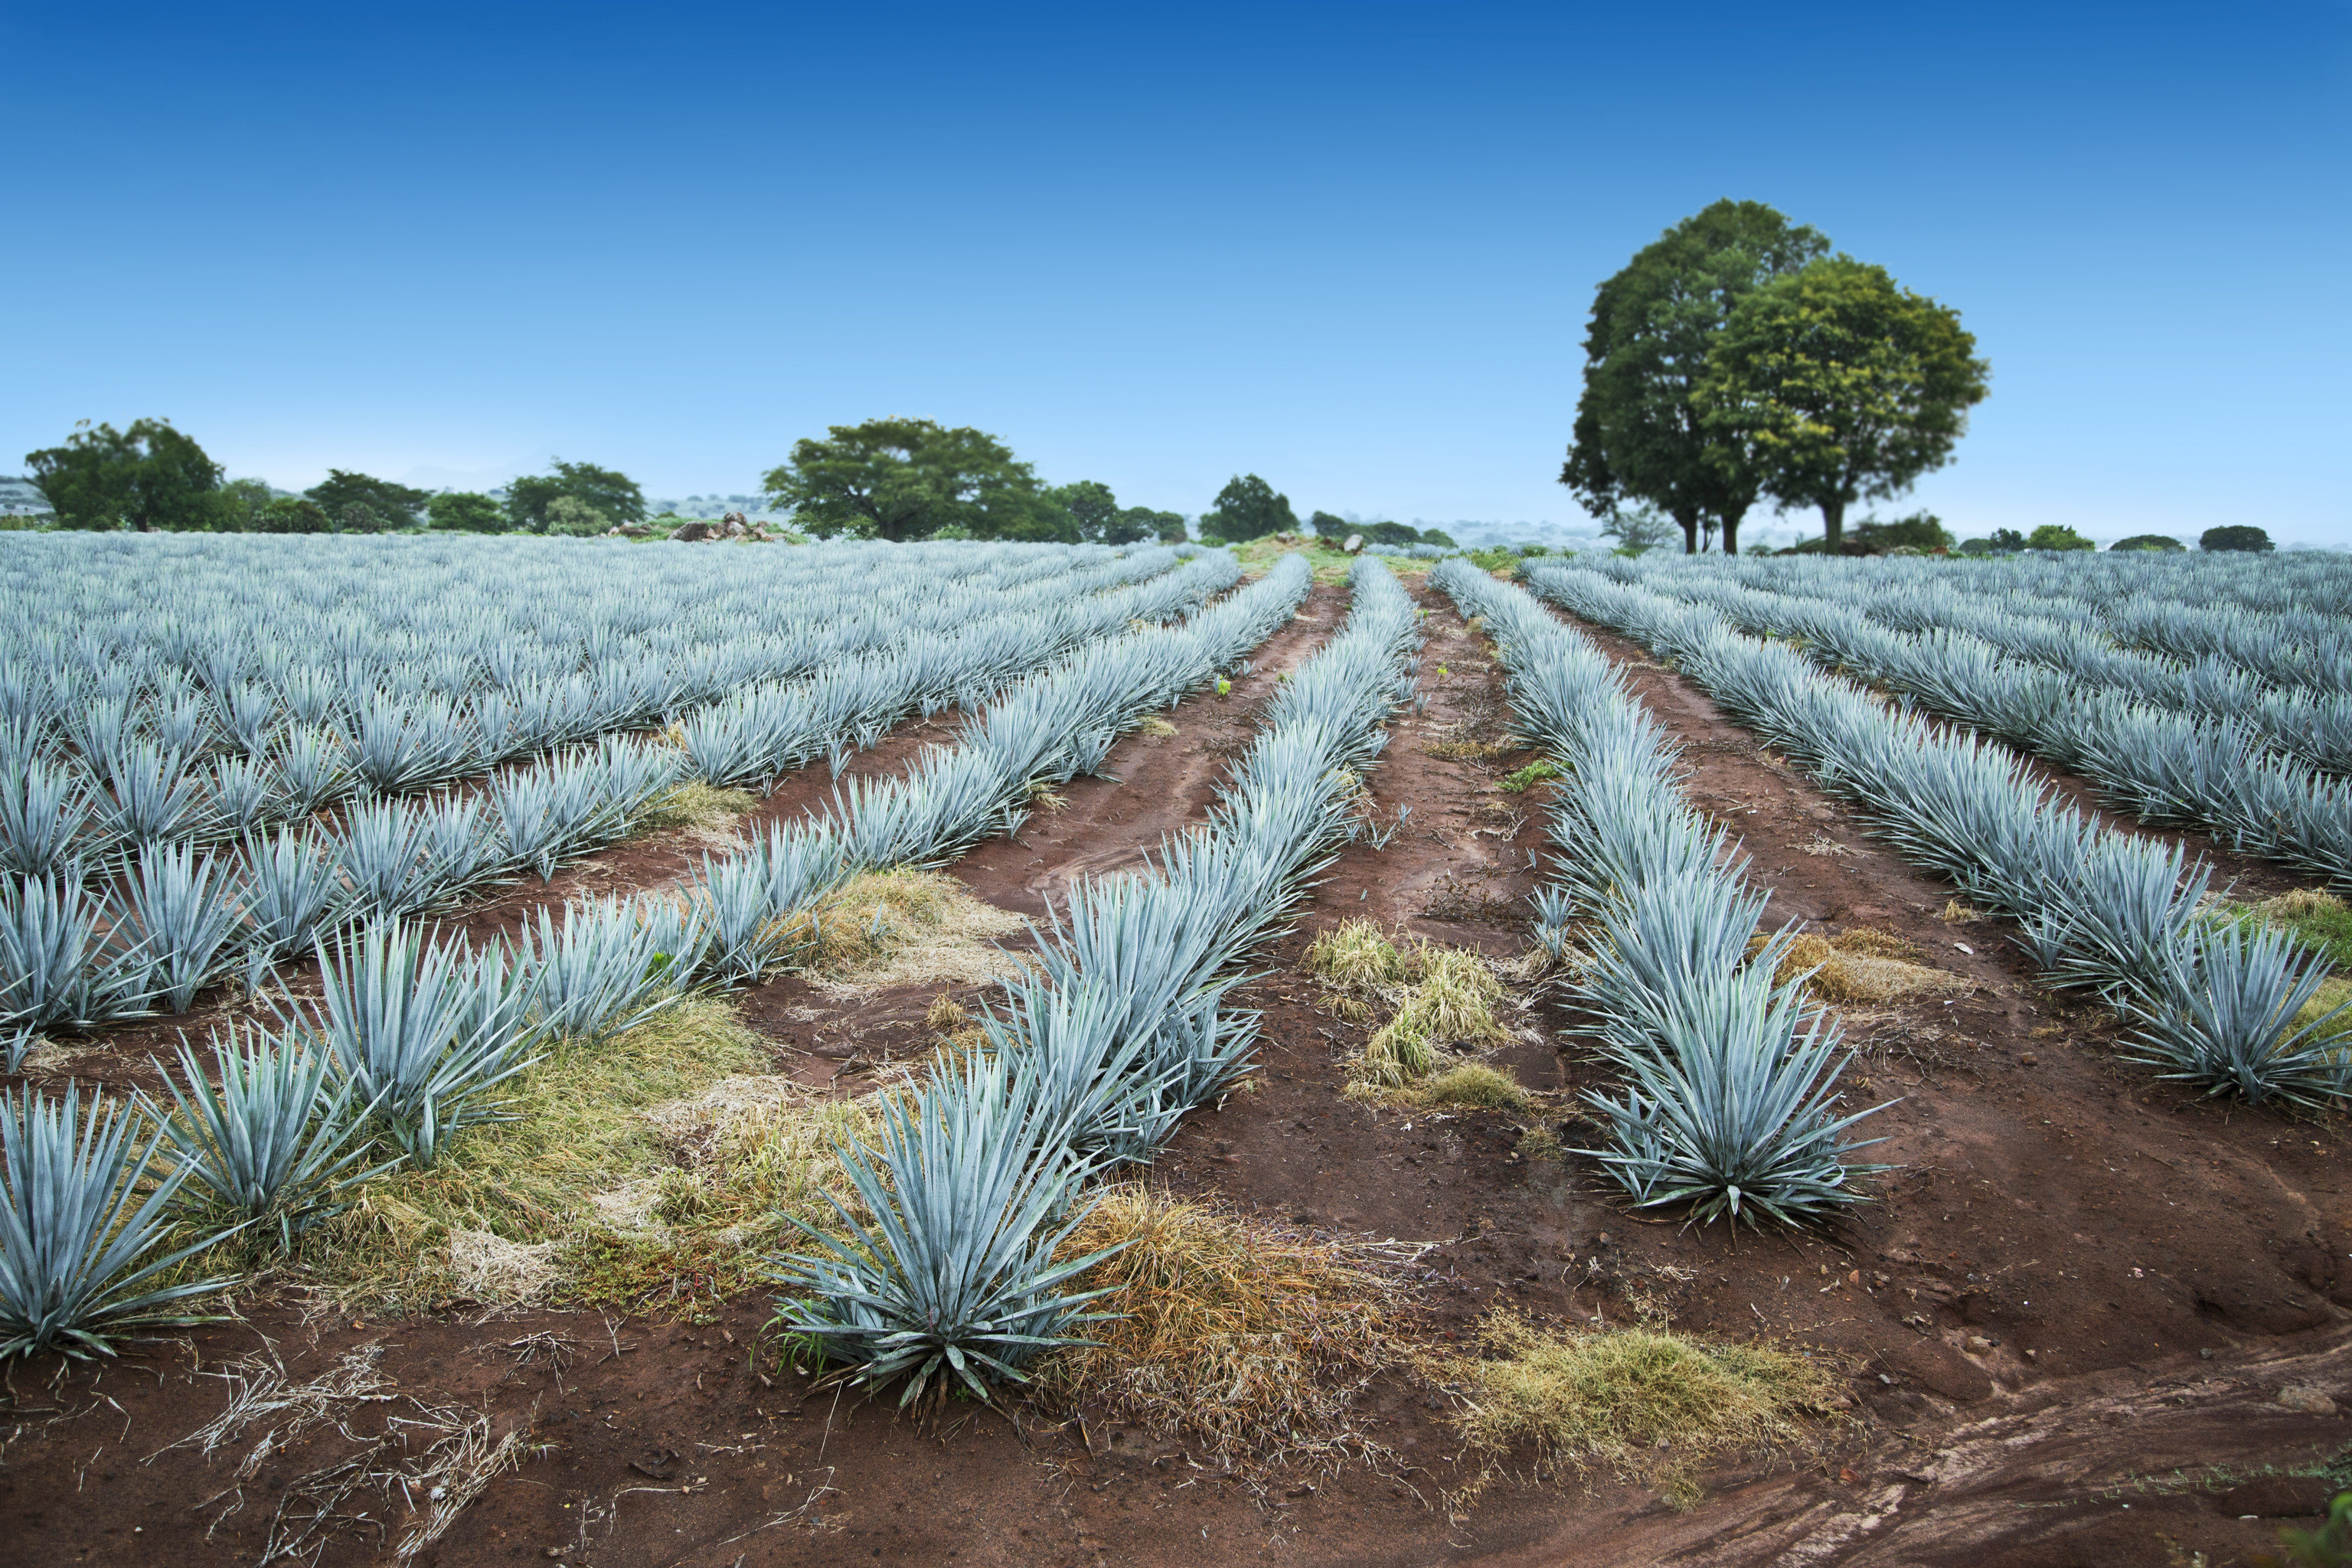 Trip Ideas plant field agave azul crop agriculture agave grass family tree grass plantation shrubland sky cactus flowering plant plant community landscape